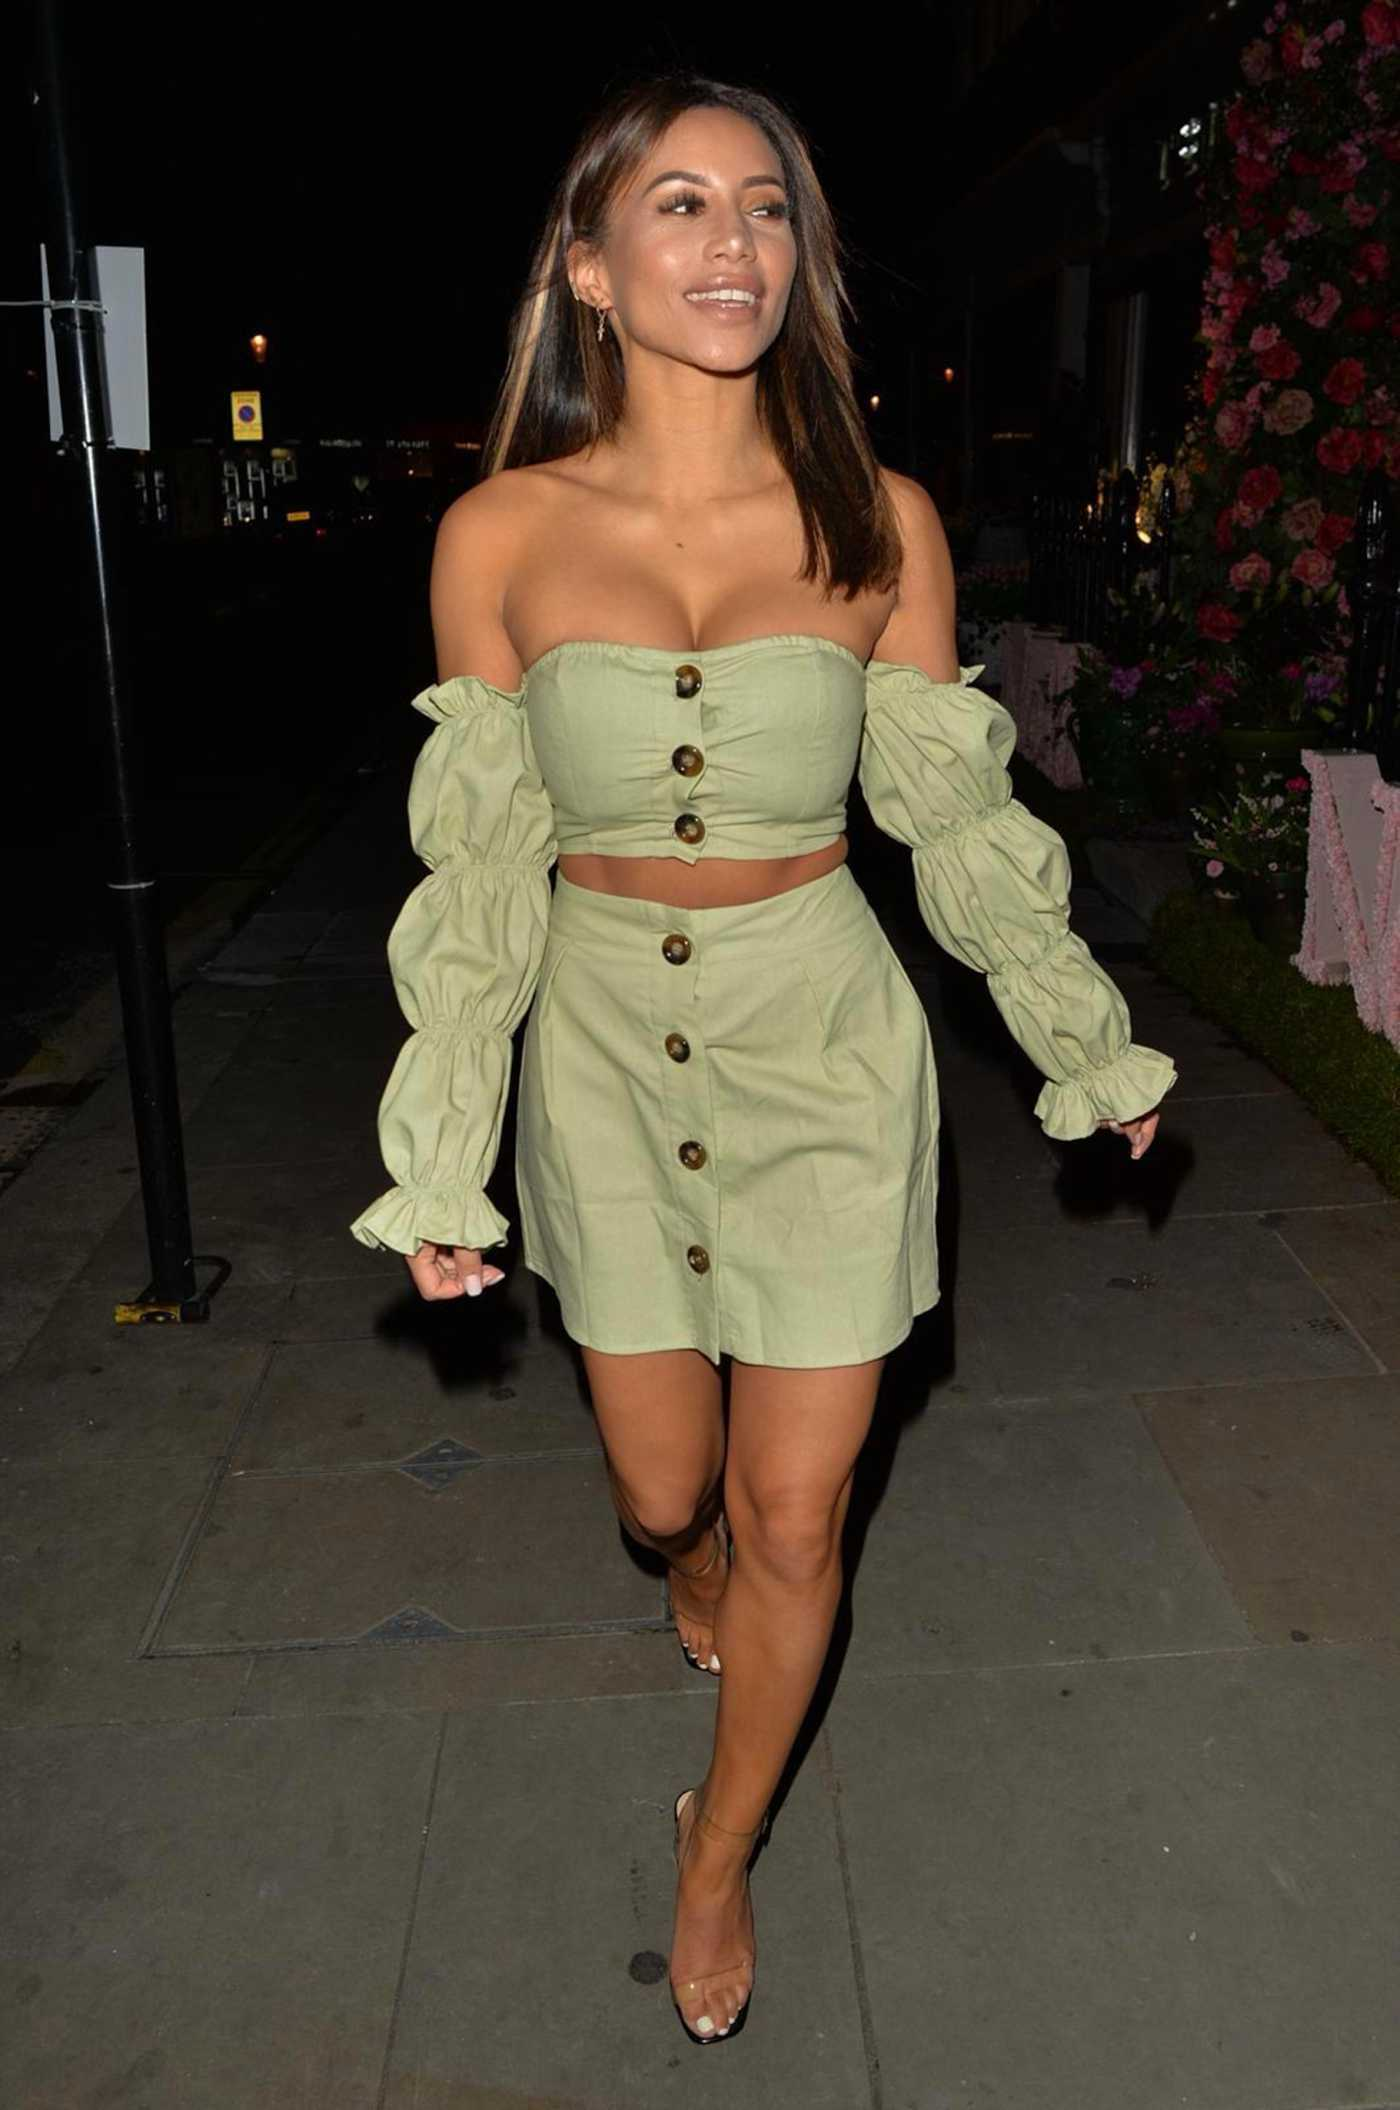 Kayleigh Morris in a Light Green Ensemble Leaves the Ivy Restaurant in Chelsea 10/21/2020